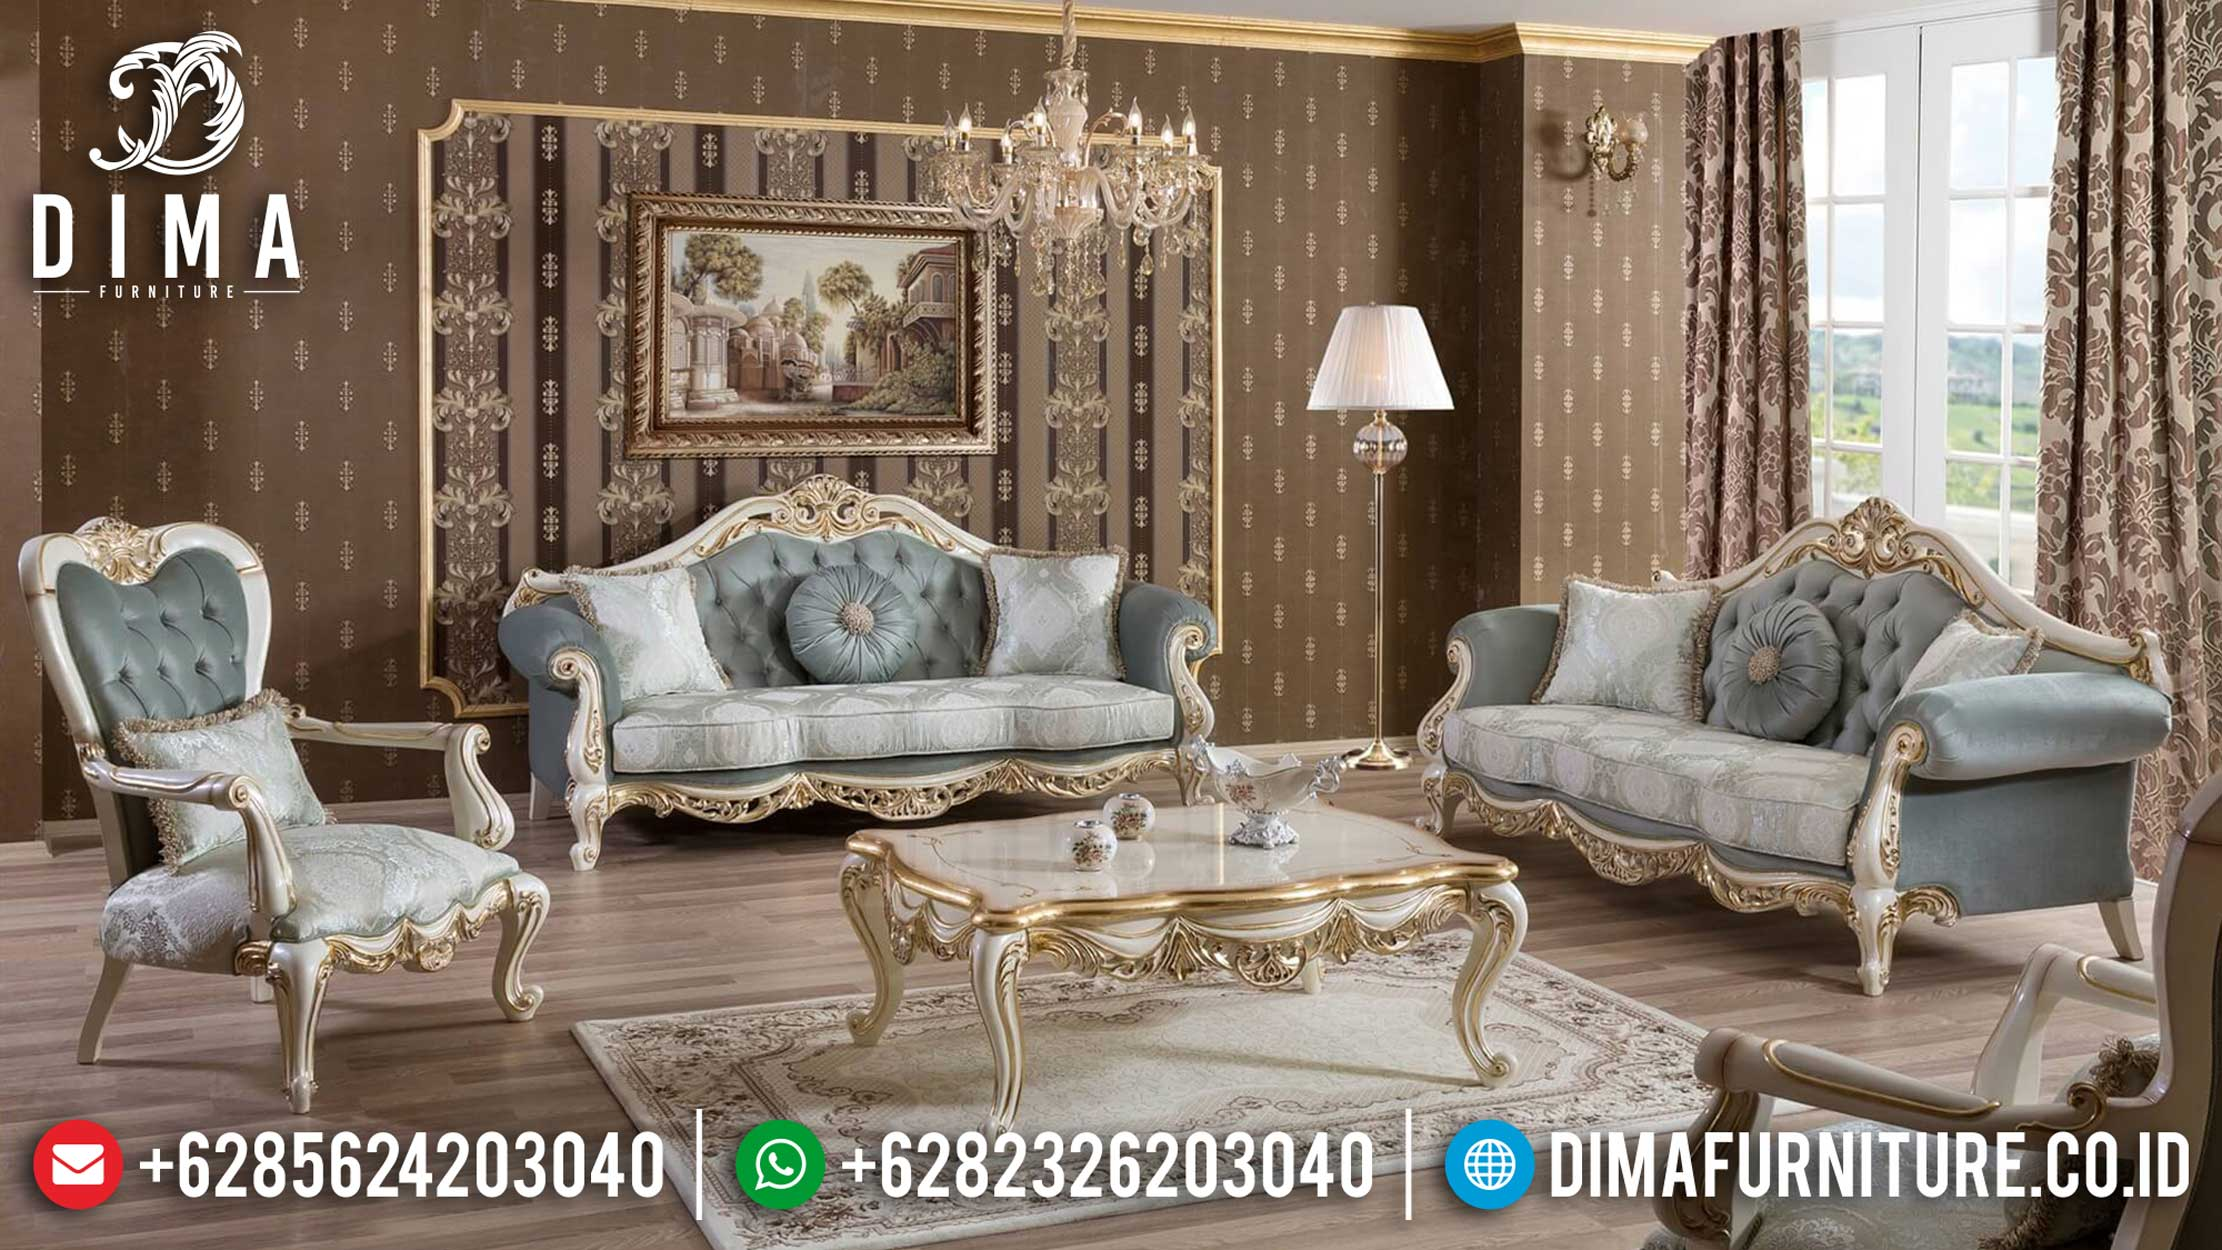 New Sofa Tamu Mewah Luxury Classic Turkish Salon Style Furniture Jepara TTJ-0984